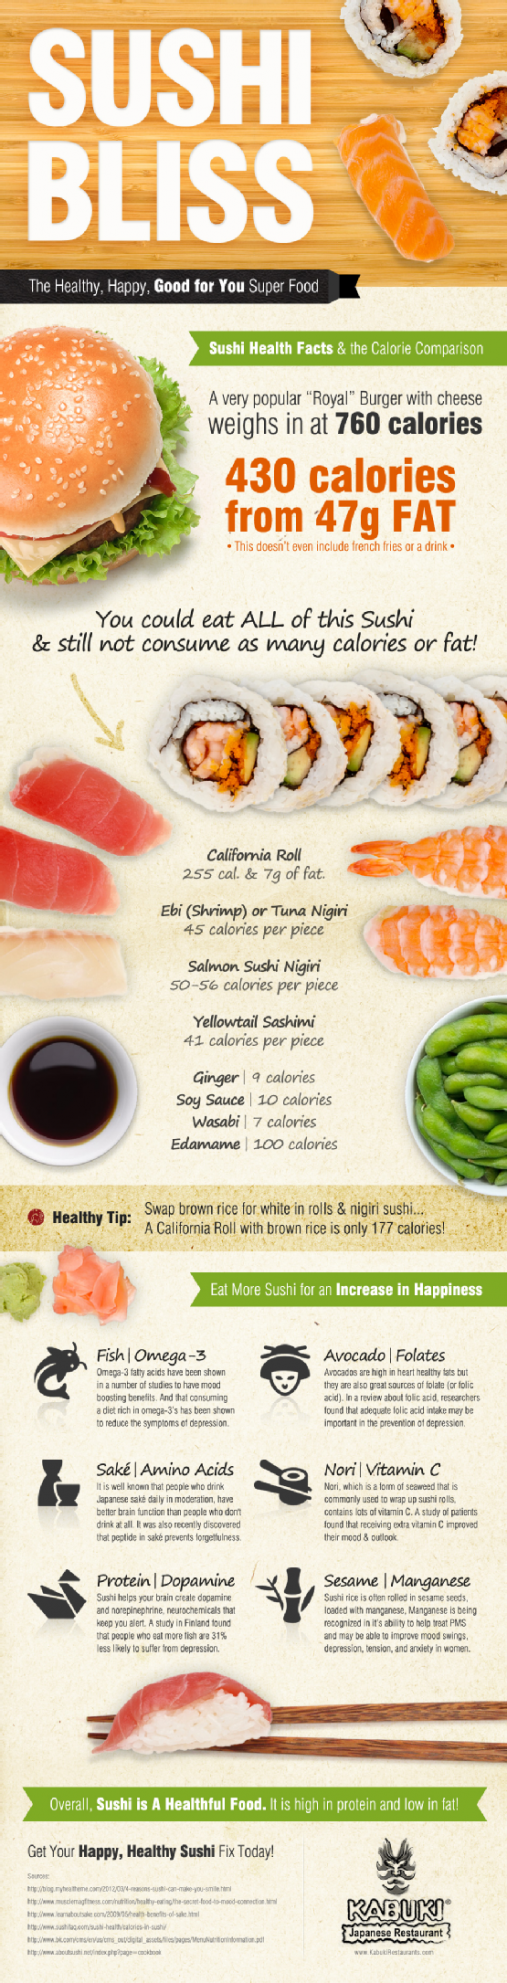 The Surprising Health Benefits of Sushi